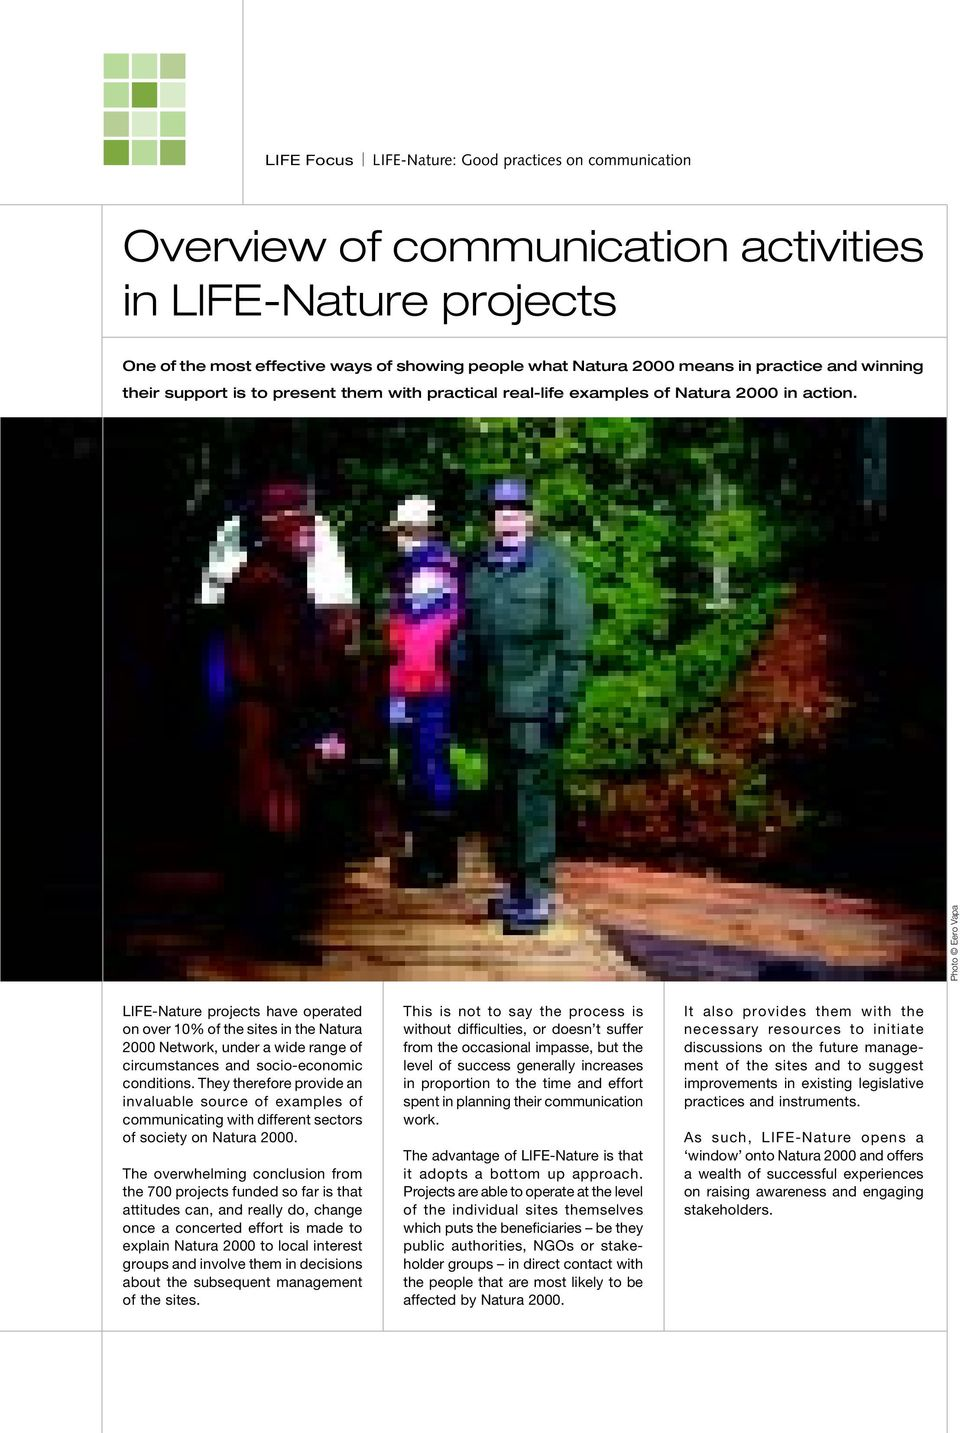 Photo Eero Vapa LIFE-Nature projects have operated on over 10% of the sites in the Natura 2000 Network, under a wide range of circumstances and socio-economic conditions.